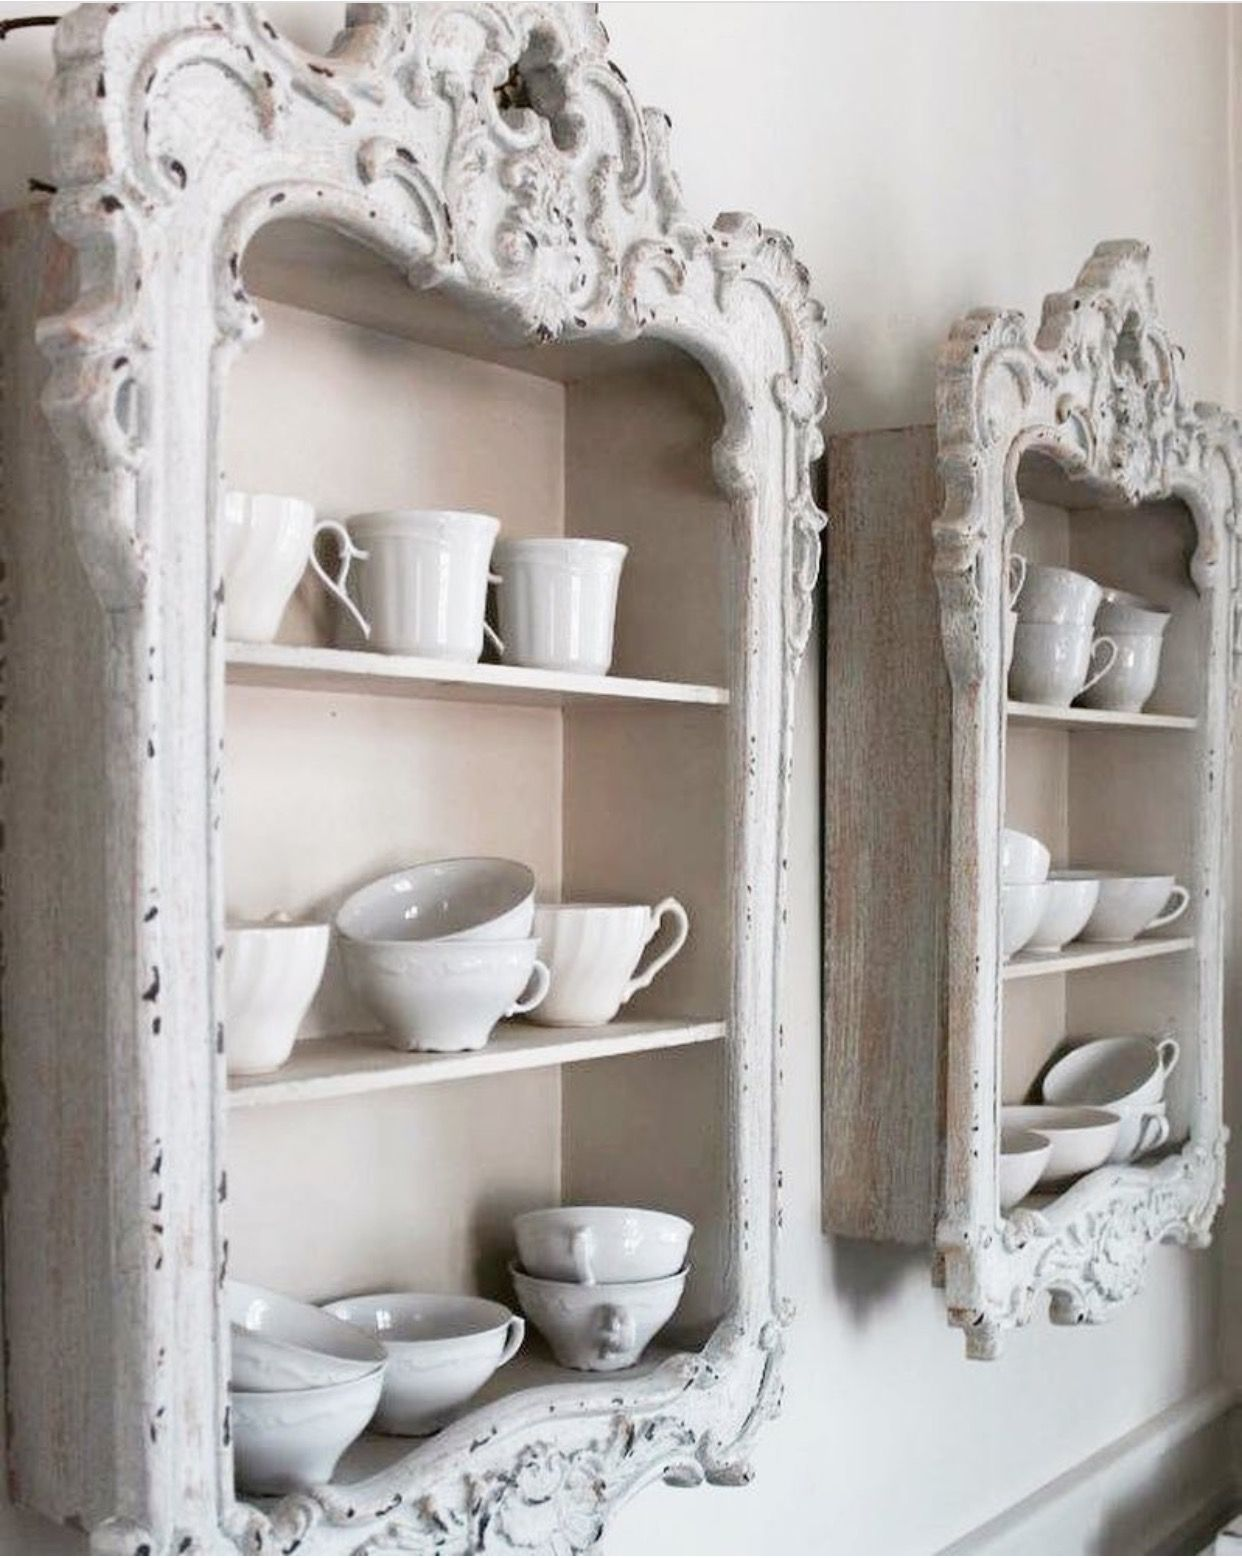 diy shelving from old vintage picture frames zuk nftige. Black Bedroom Furniture Sets. Home Design Ideas